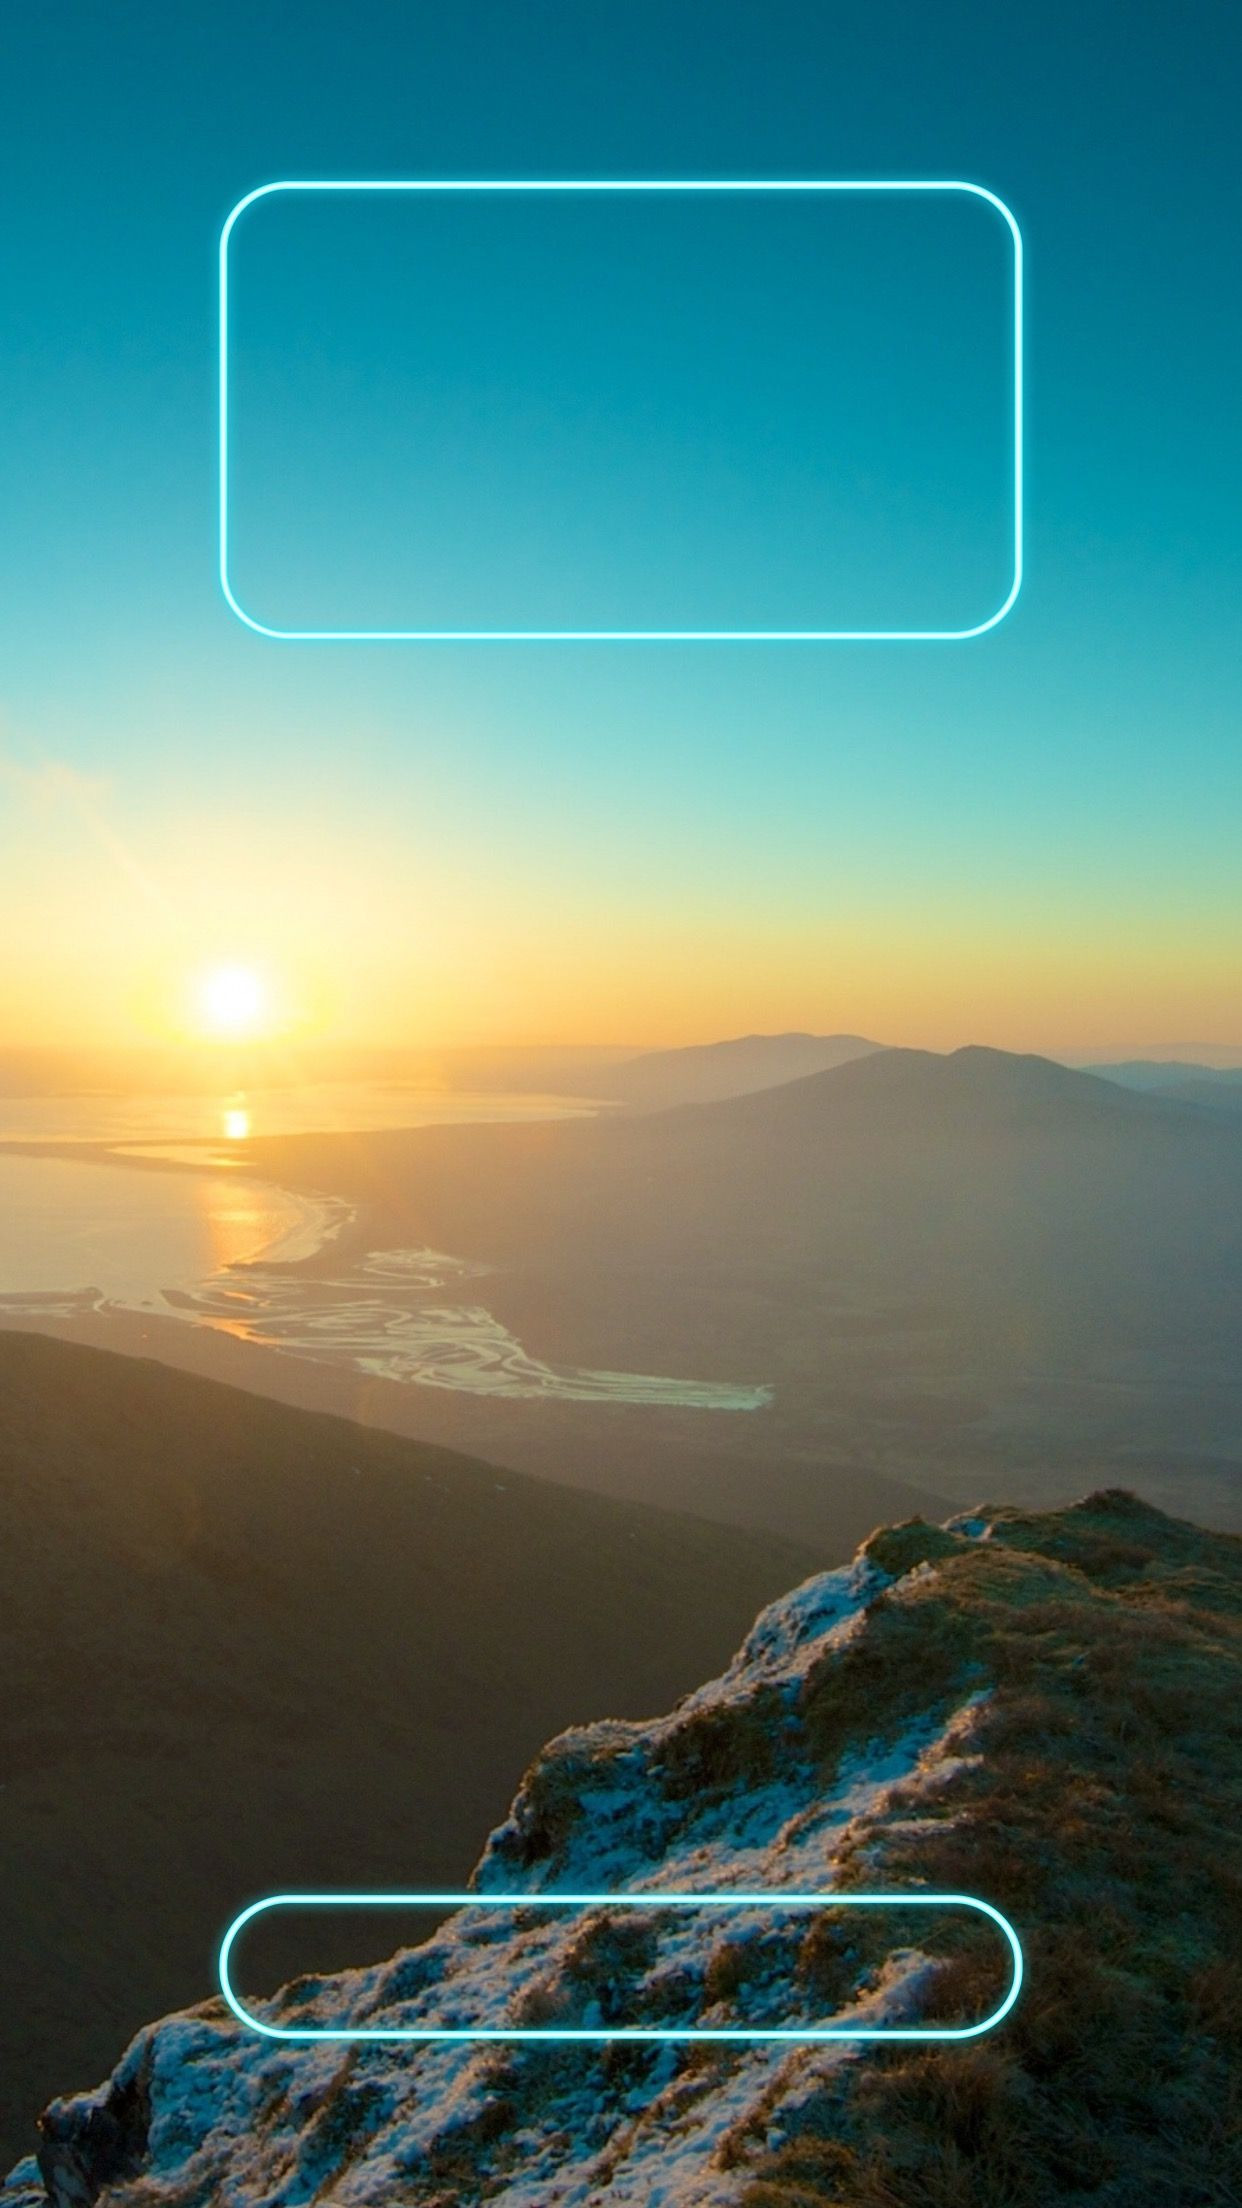 15 Wallpapers with Nature Views for the iPhone 6 Plus | Phone wallpapers | Lock screen wallpaper ...